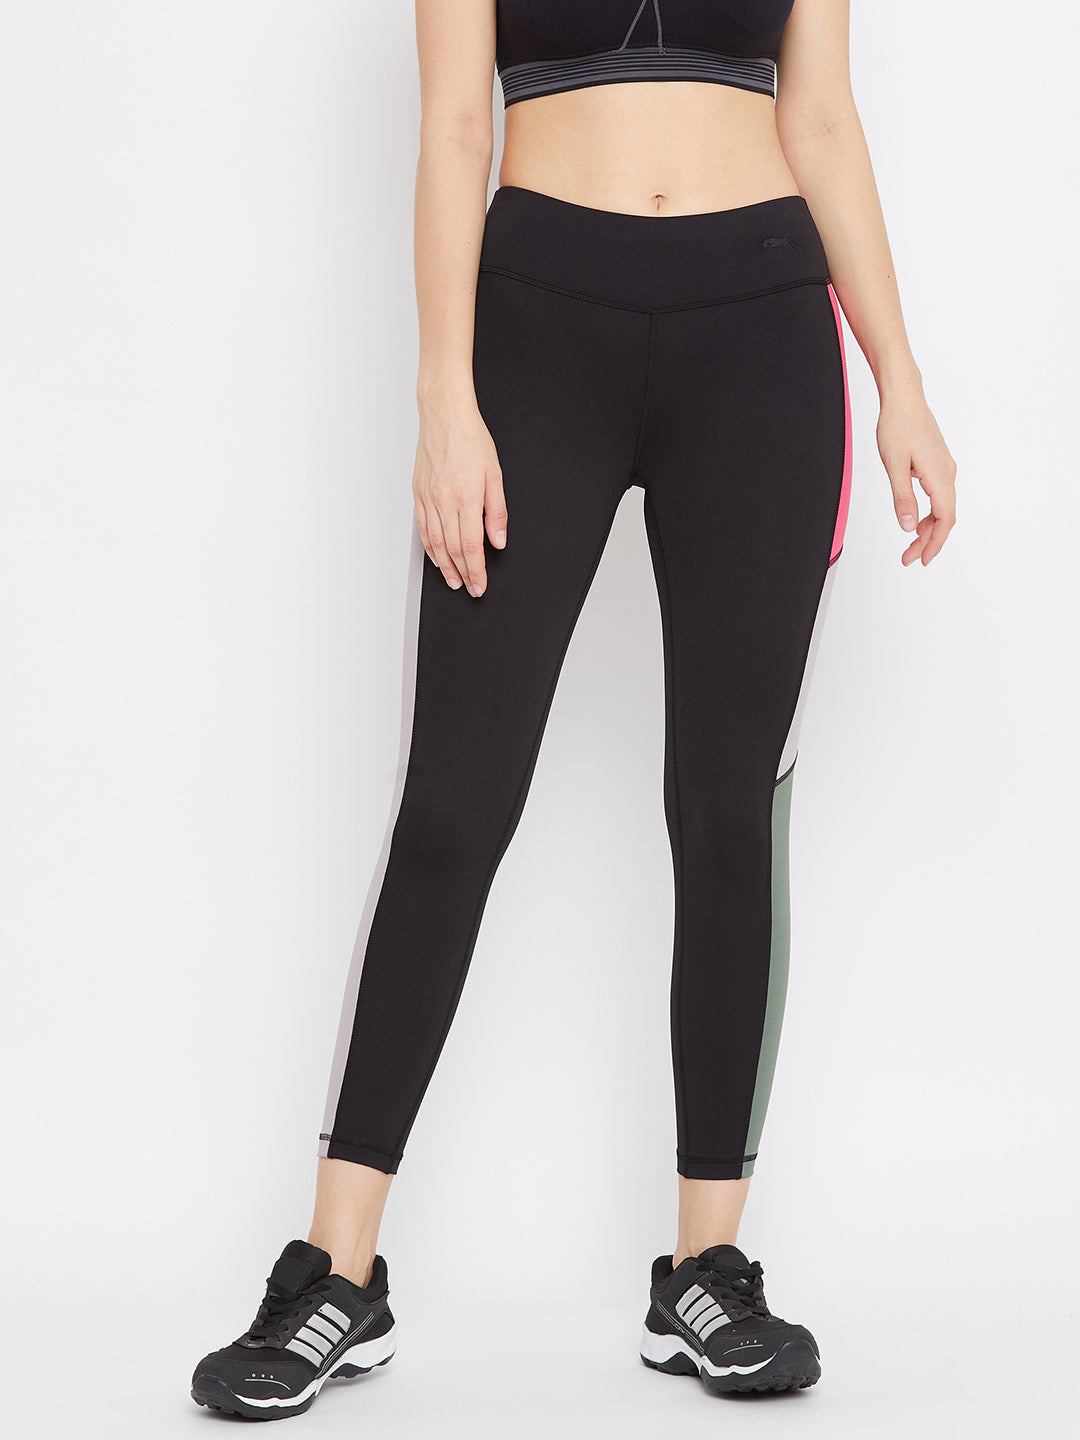 JUMP USA Women Black Solid Active Wear Tights